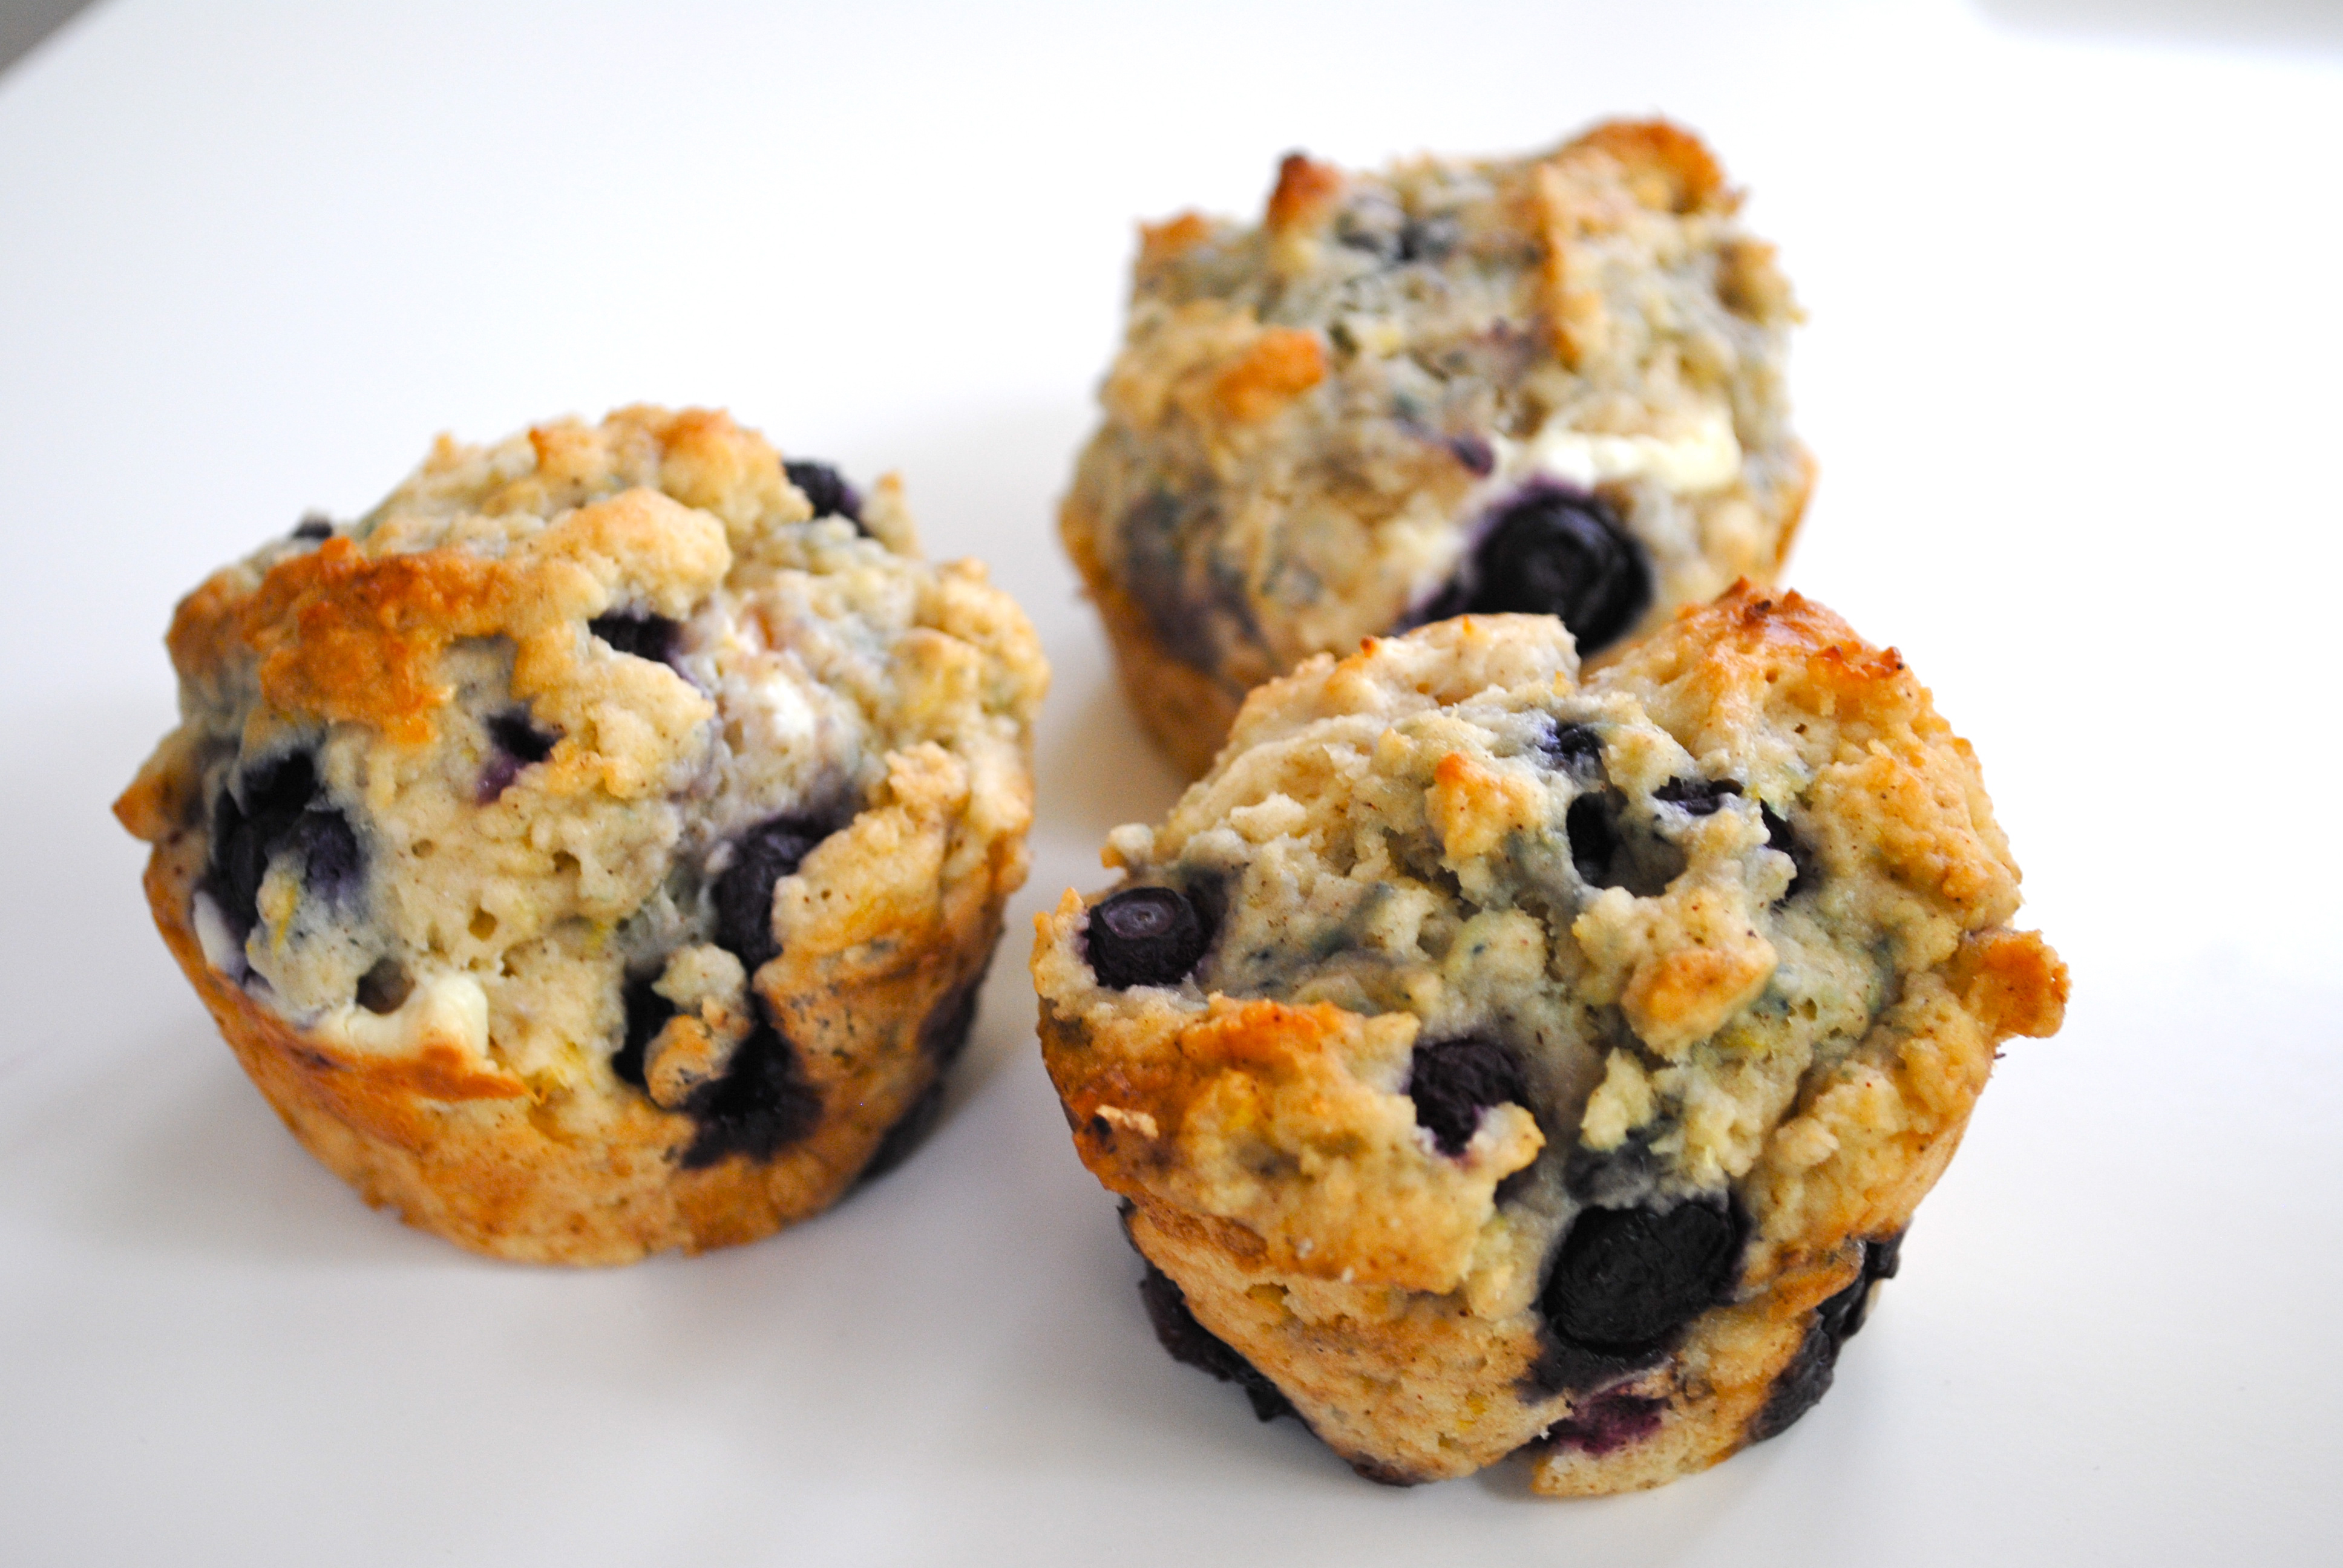 Tuesday Eats: Blueberry Lemon Cream Cheese Muffins - Turquoise and ...